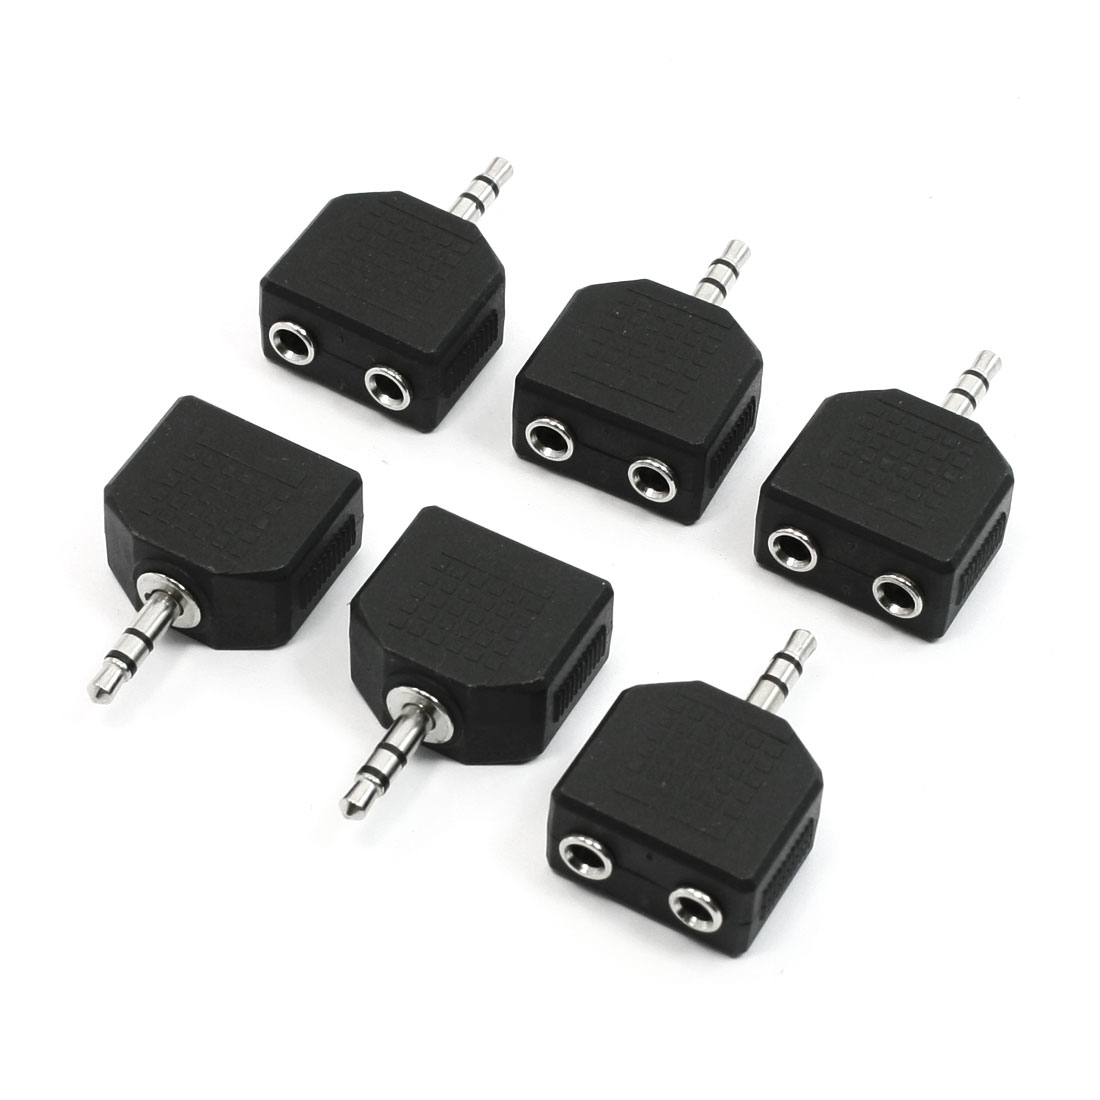 Unique Bargains 6 Pieces 3.5mm Stereo Audio Plug to 2 Port 3.5mm Jack Splitters Adapters